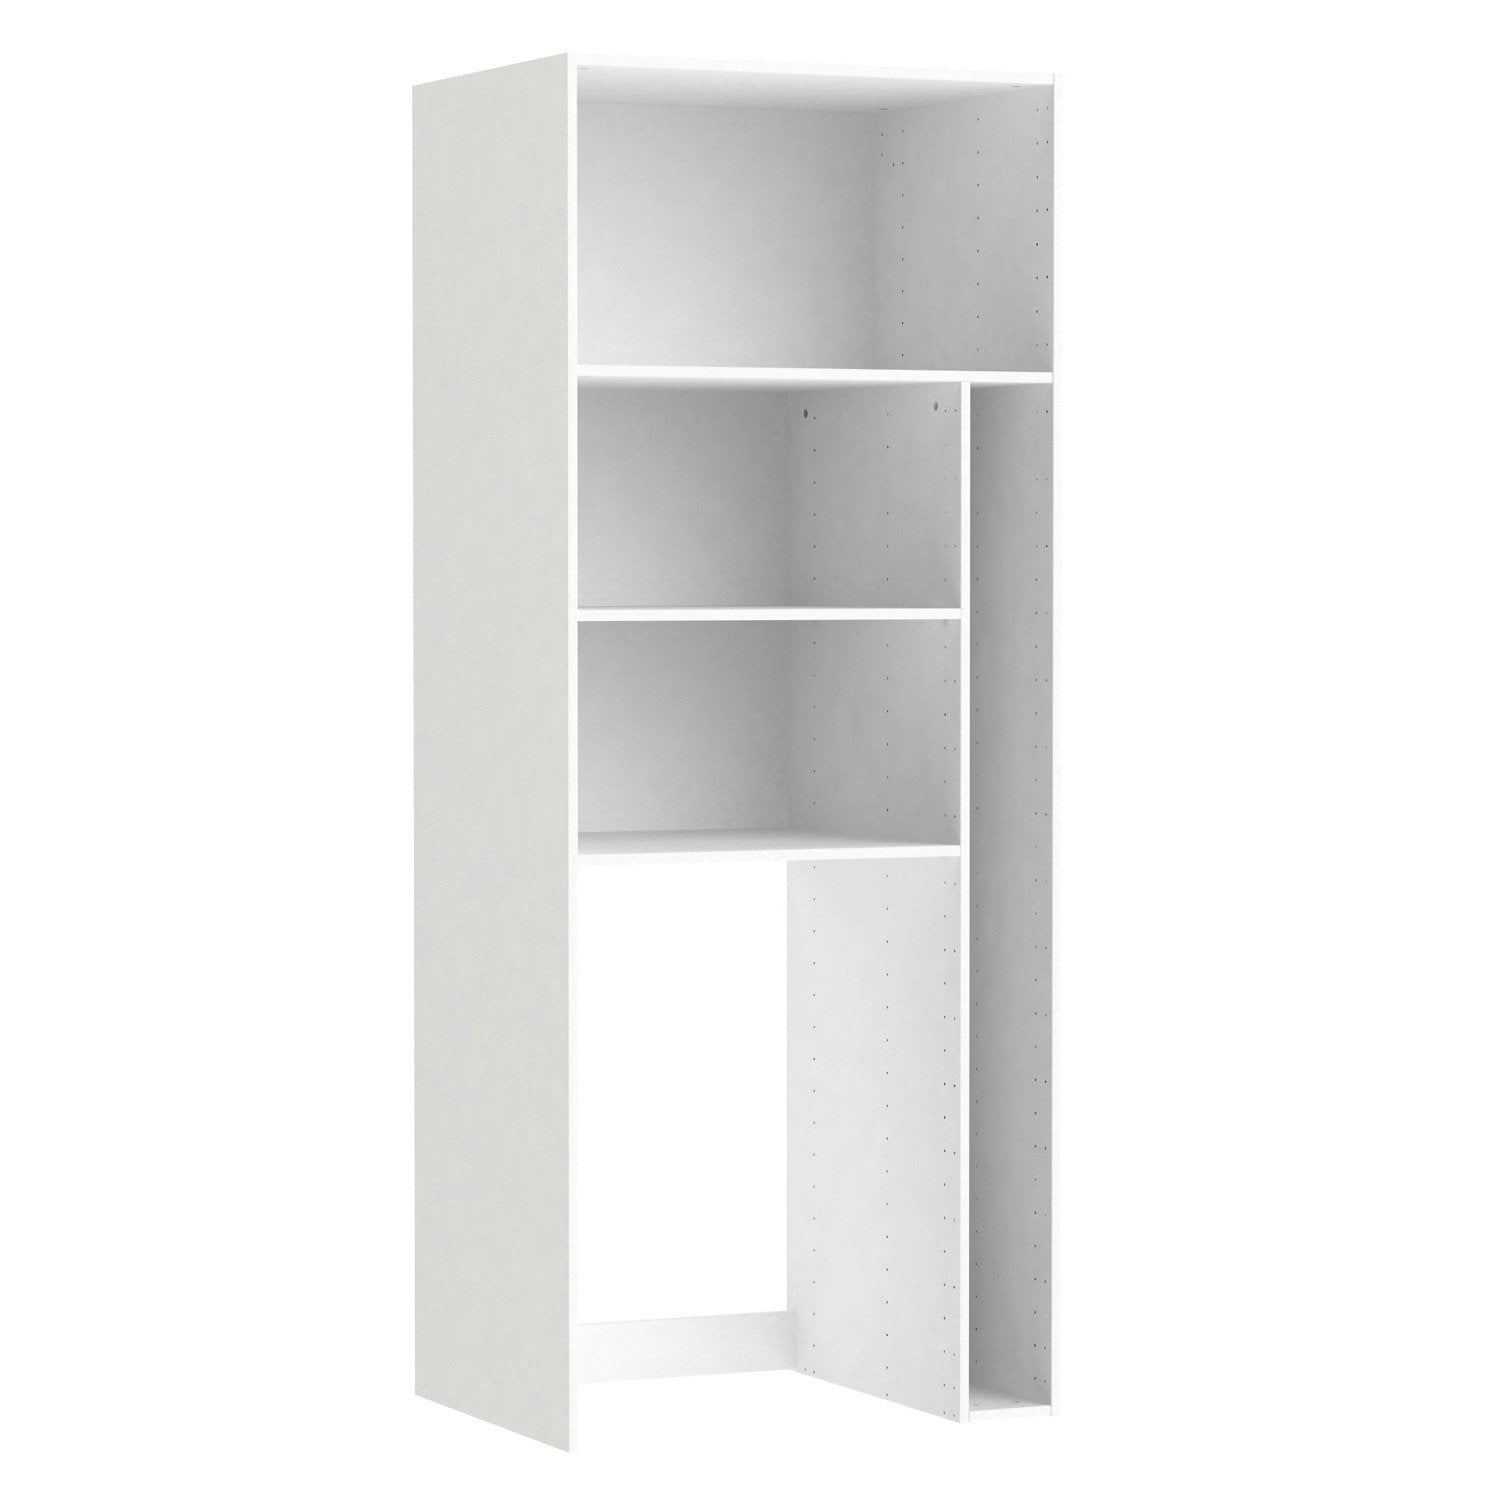 Caisson Buanderie SPACEO Home 200 X 80 X 60 Cm, Blanc